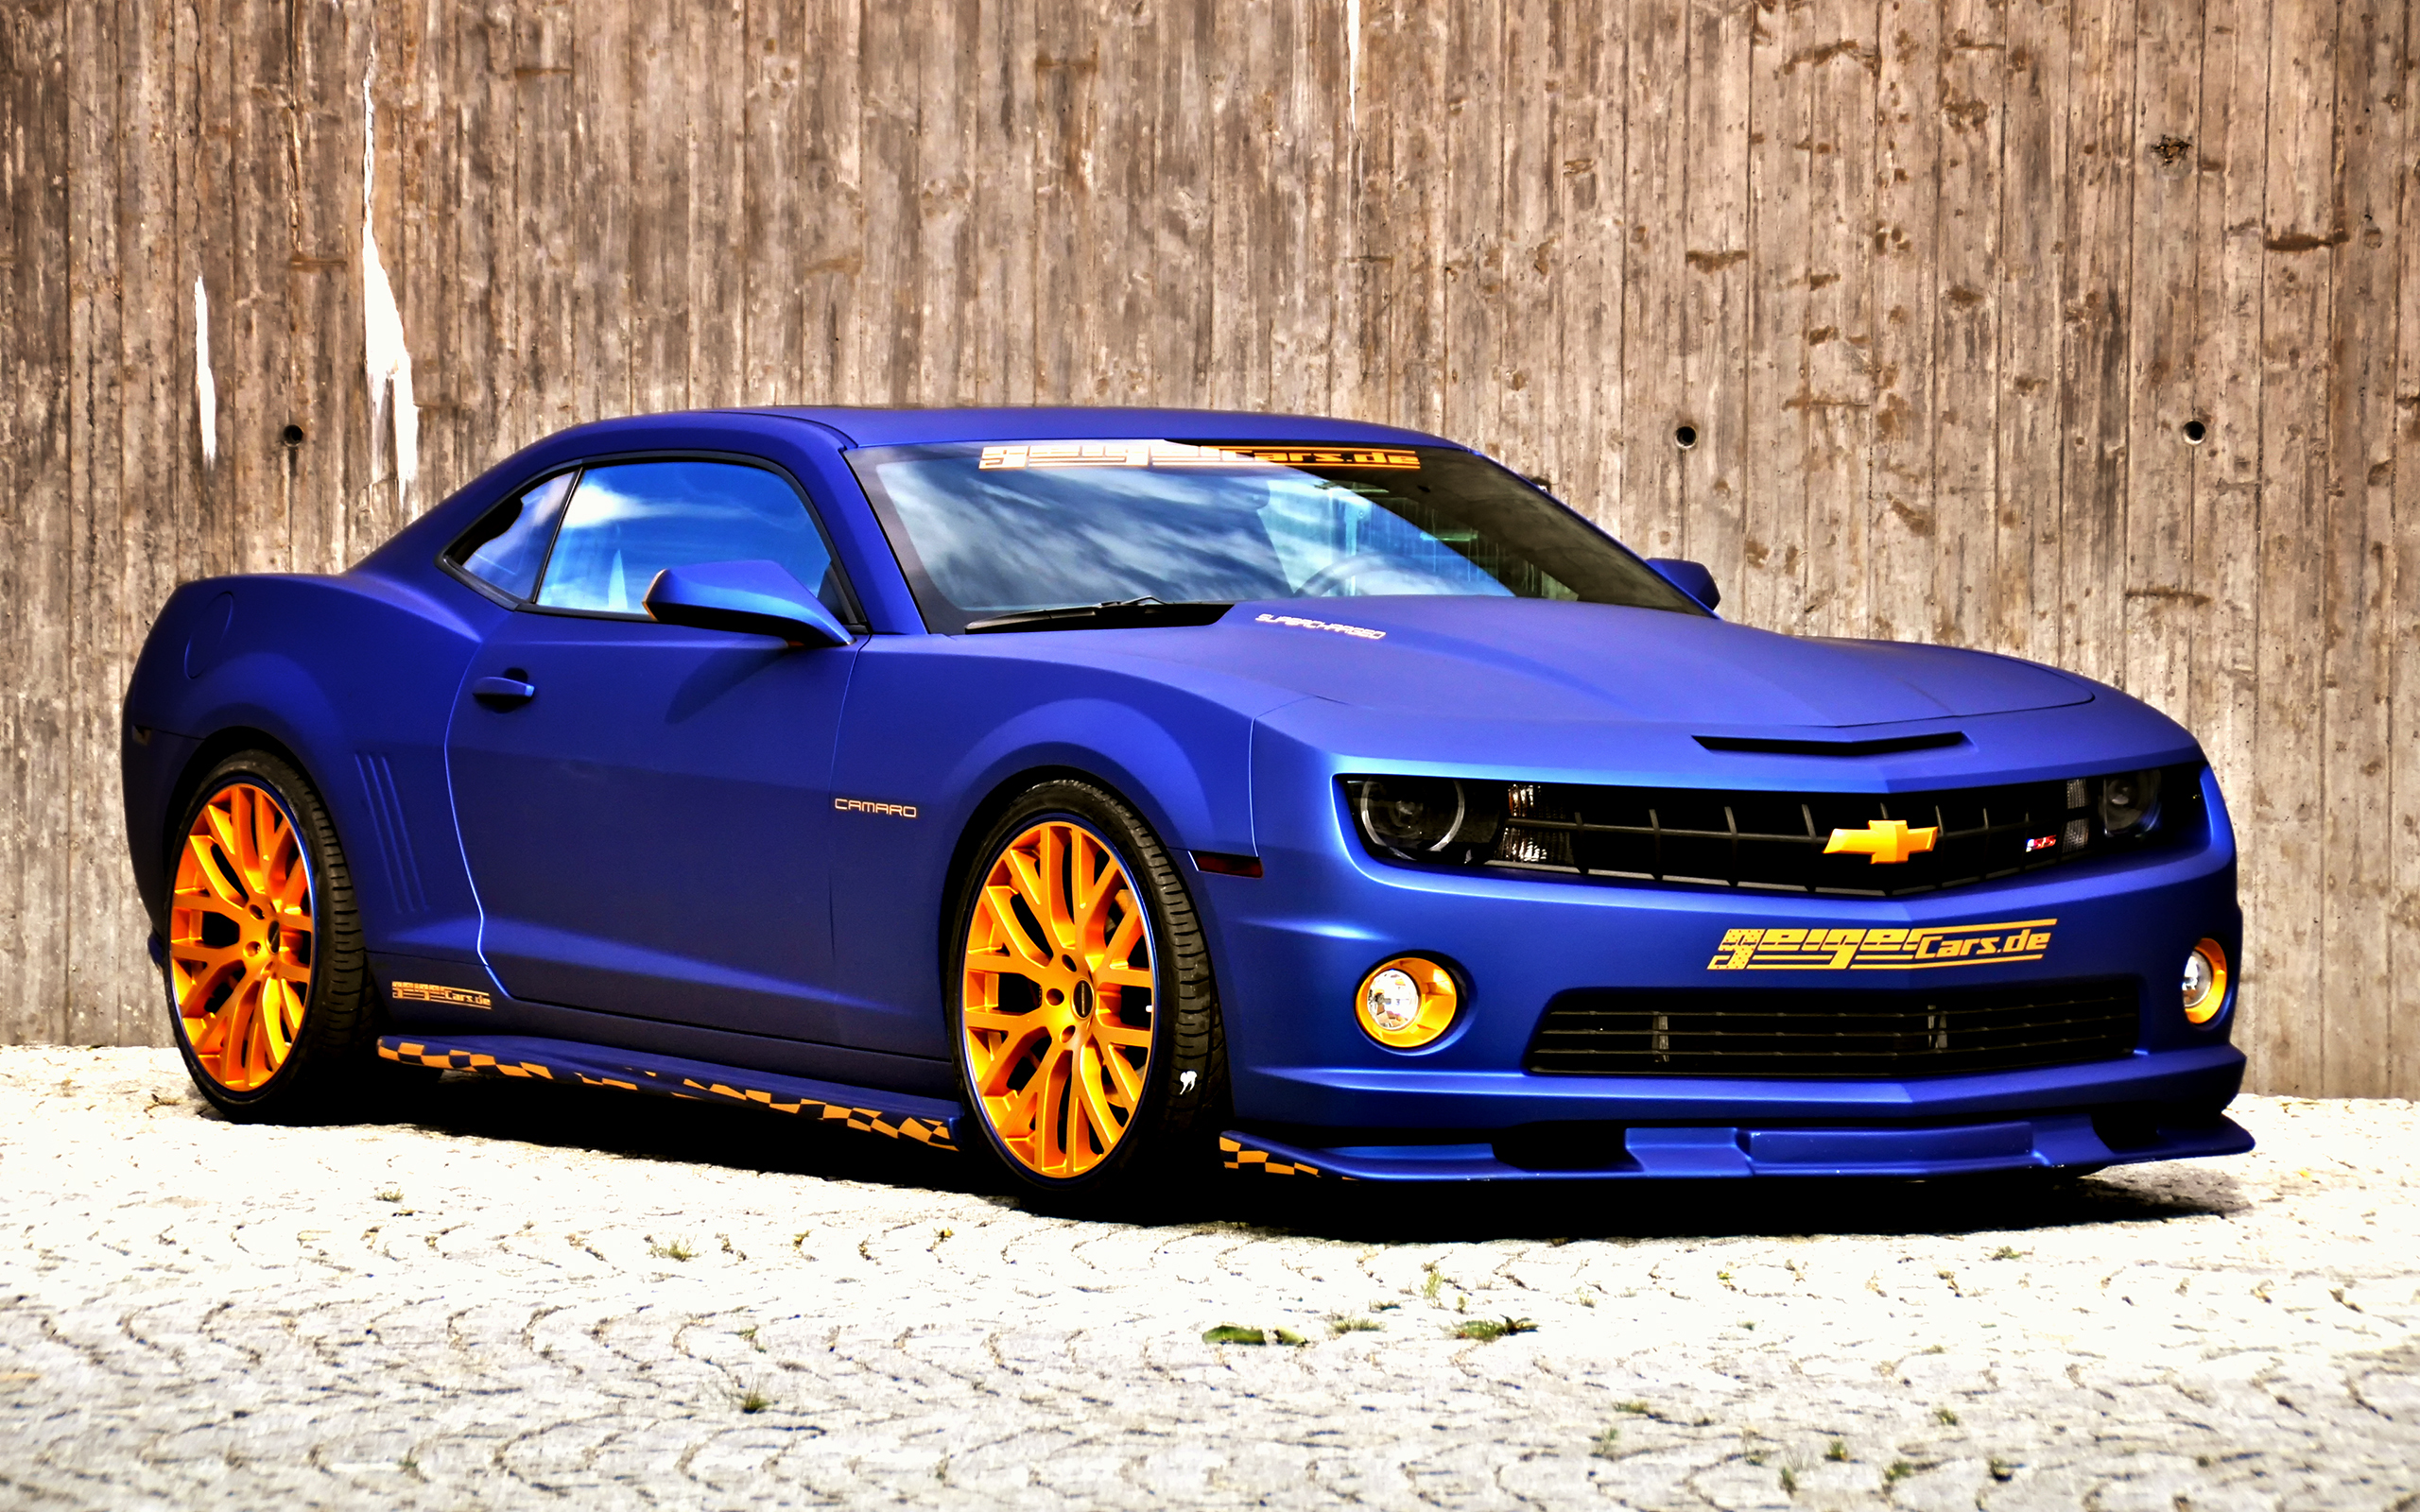 Chevrolet Camaro HD Wallpaper | Background Image | 2560x1600 | ID:770963 - Wallpaper Abyss